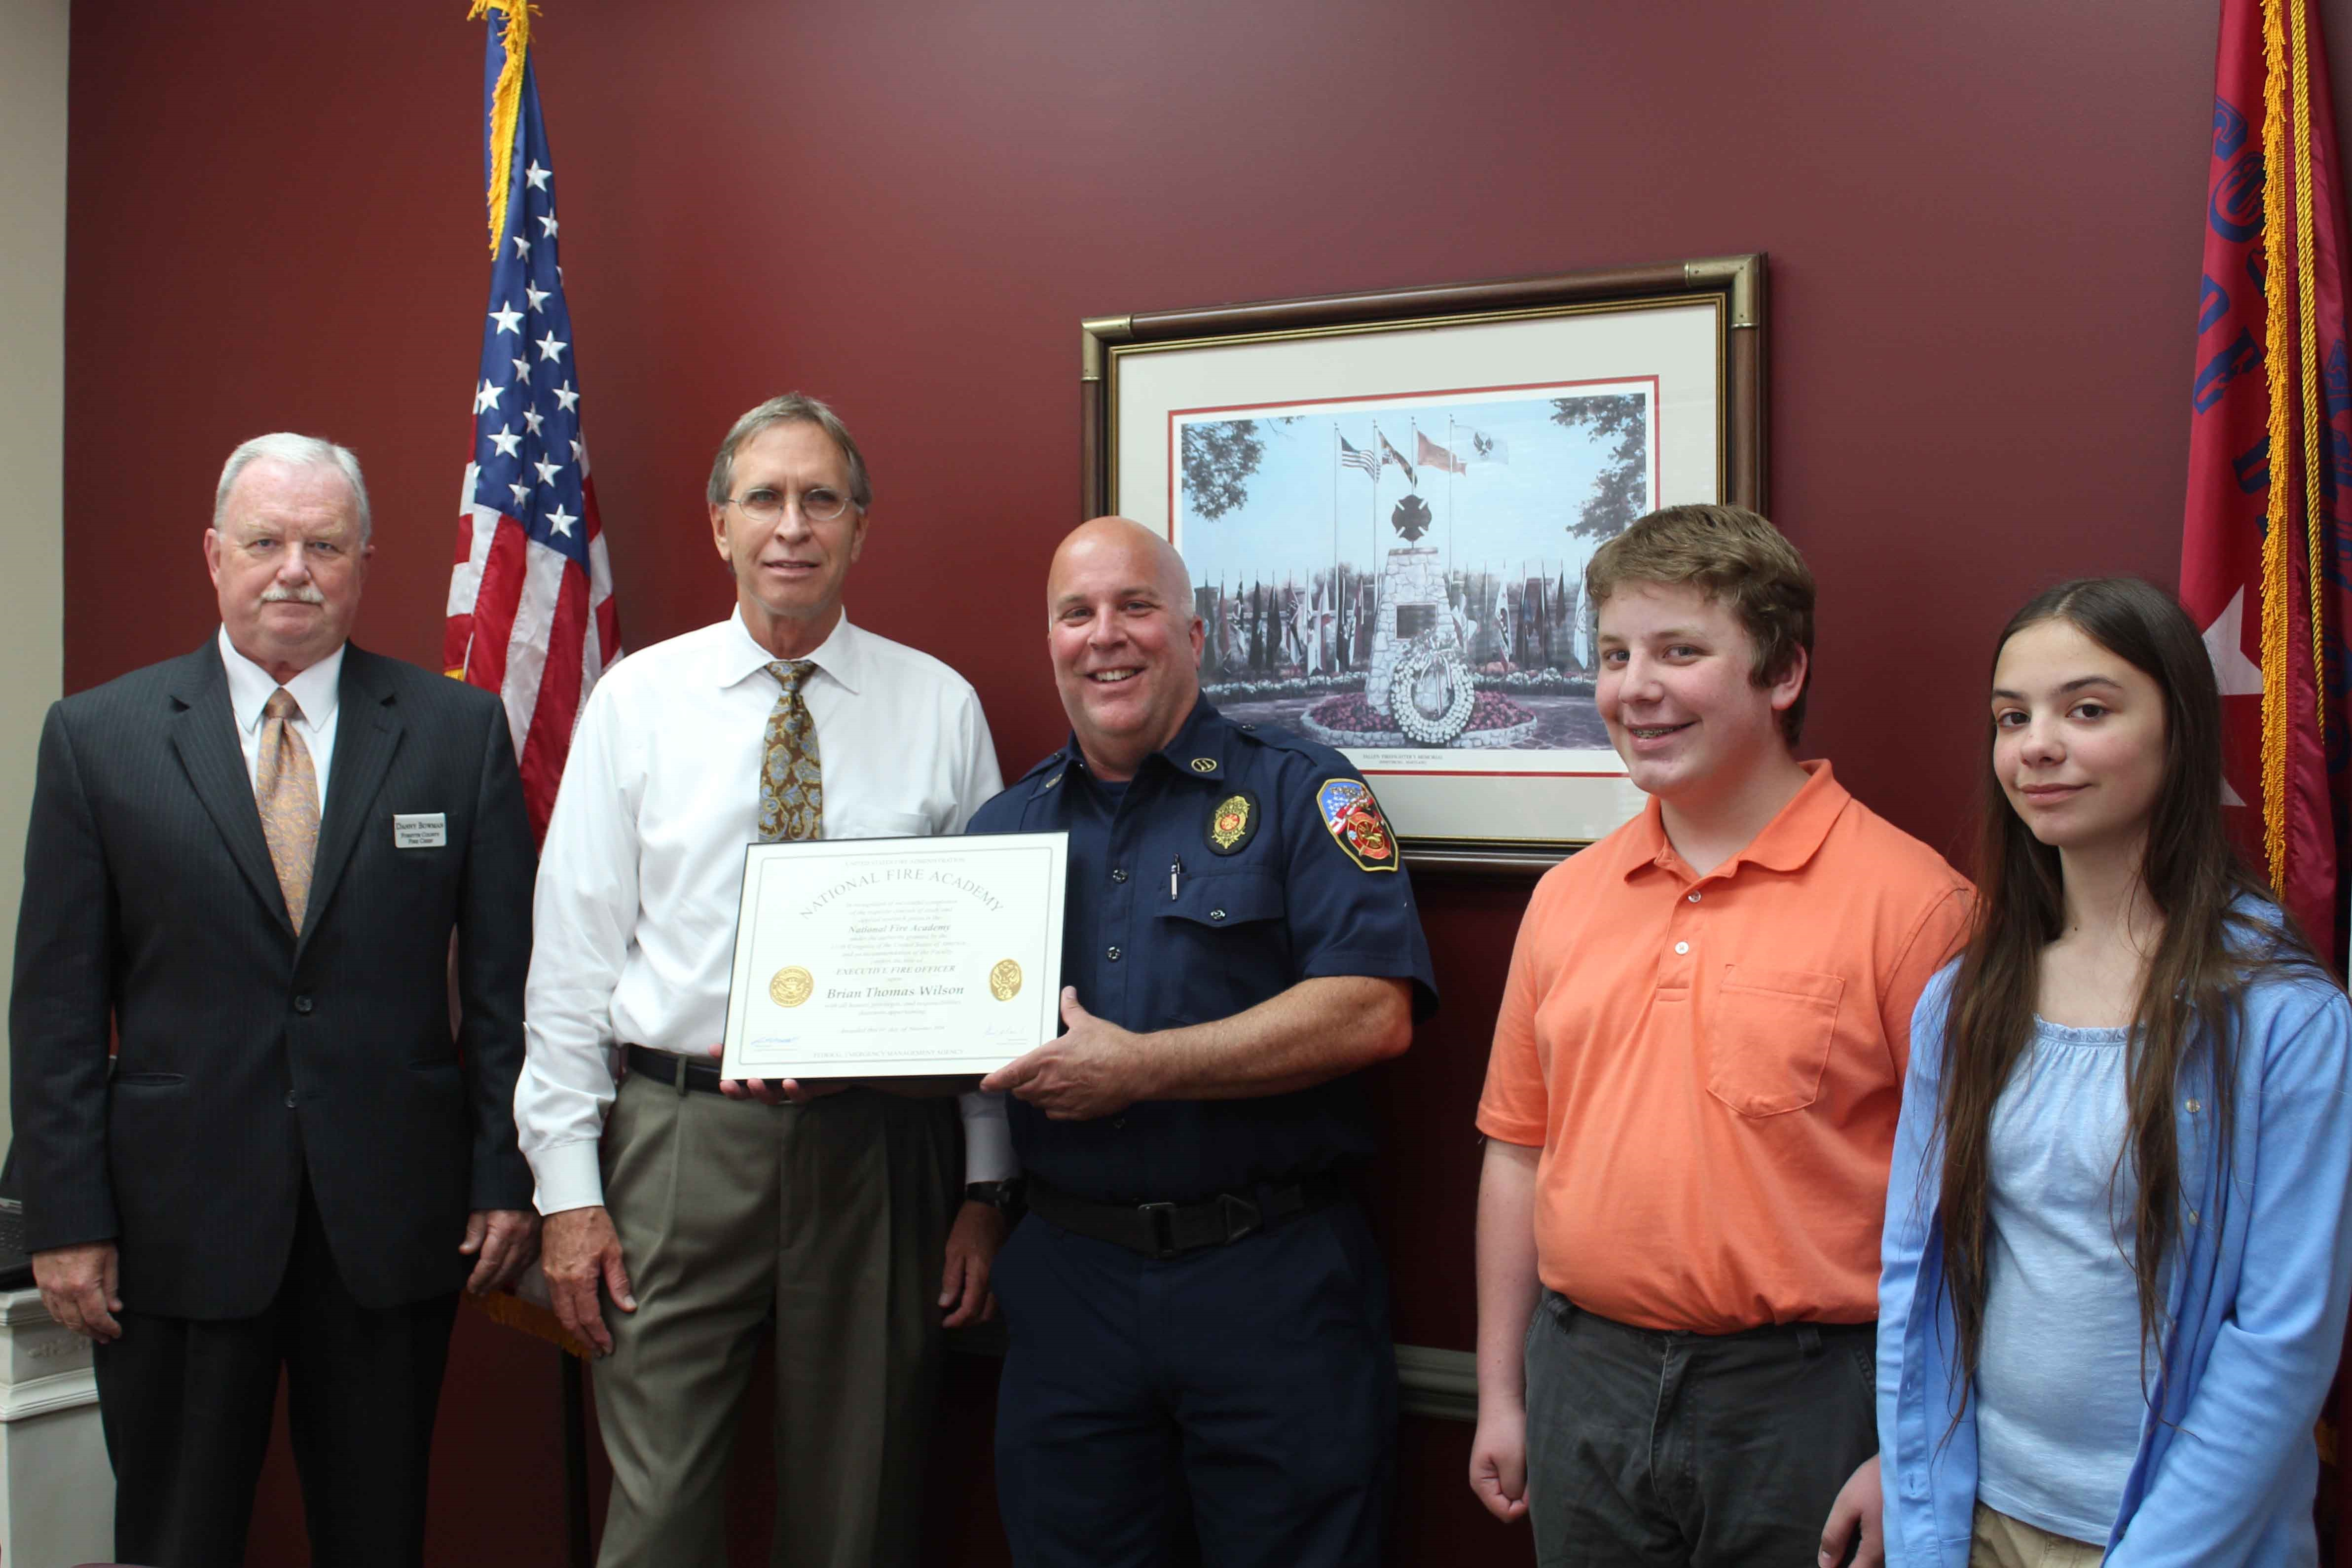 Forsyth Fire Captain Completes Executive Fire Officer Training